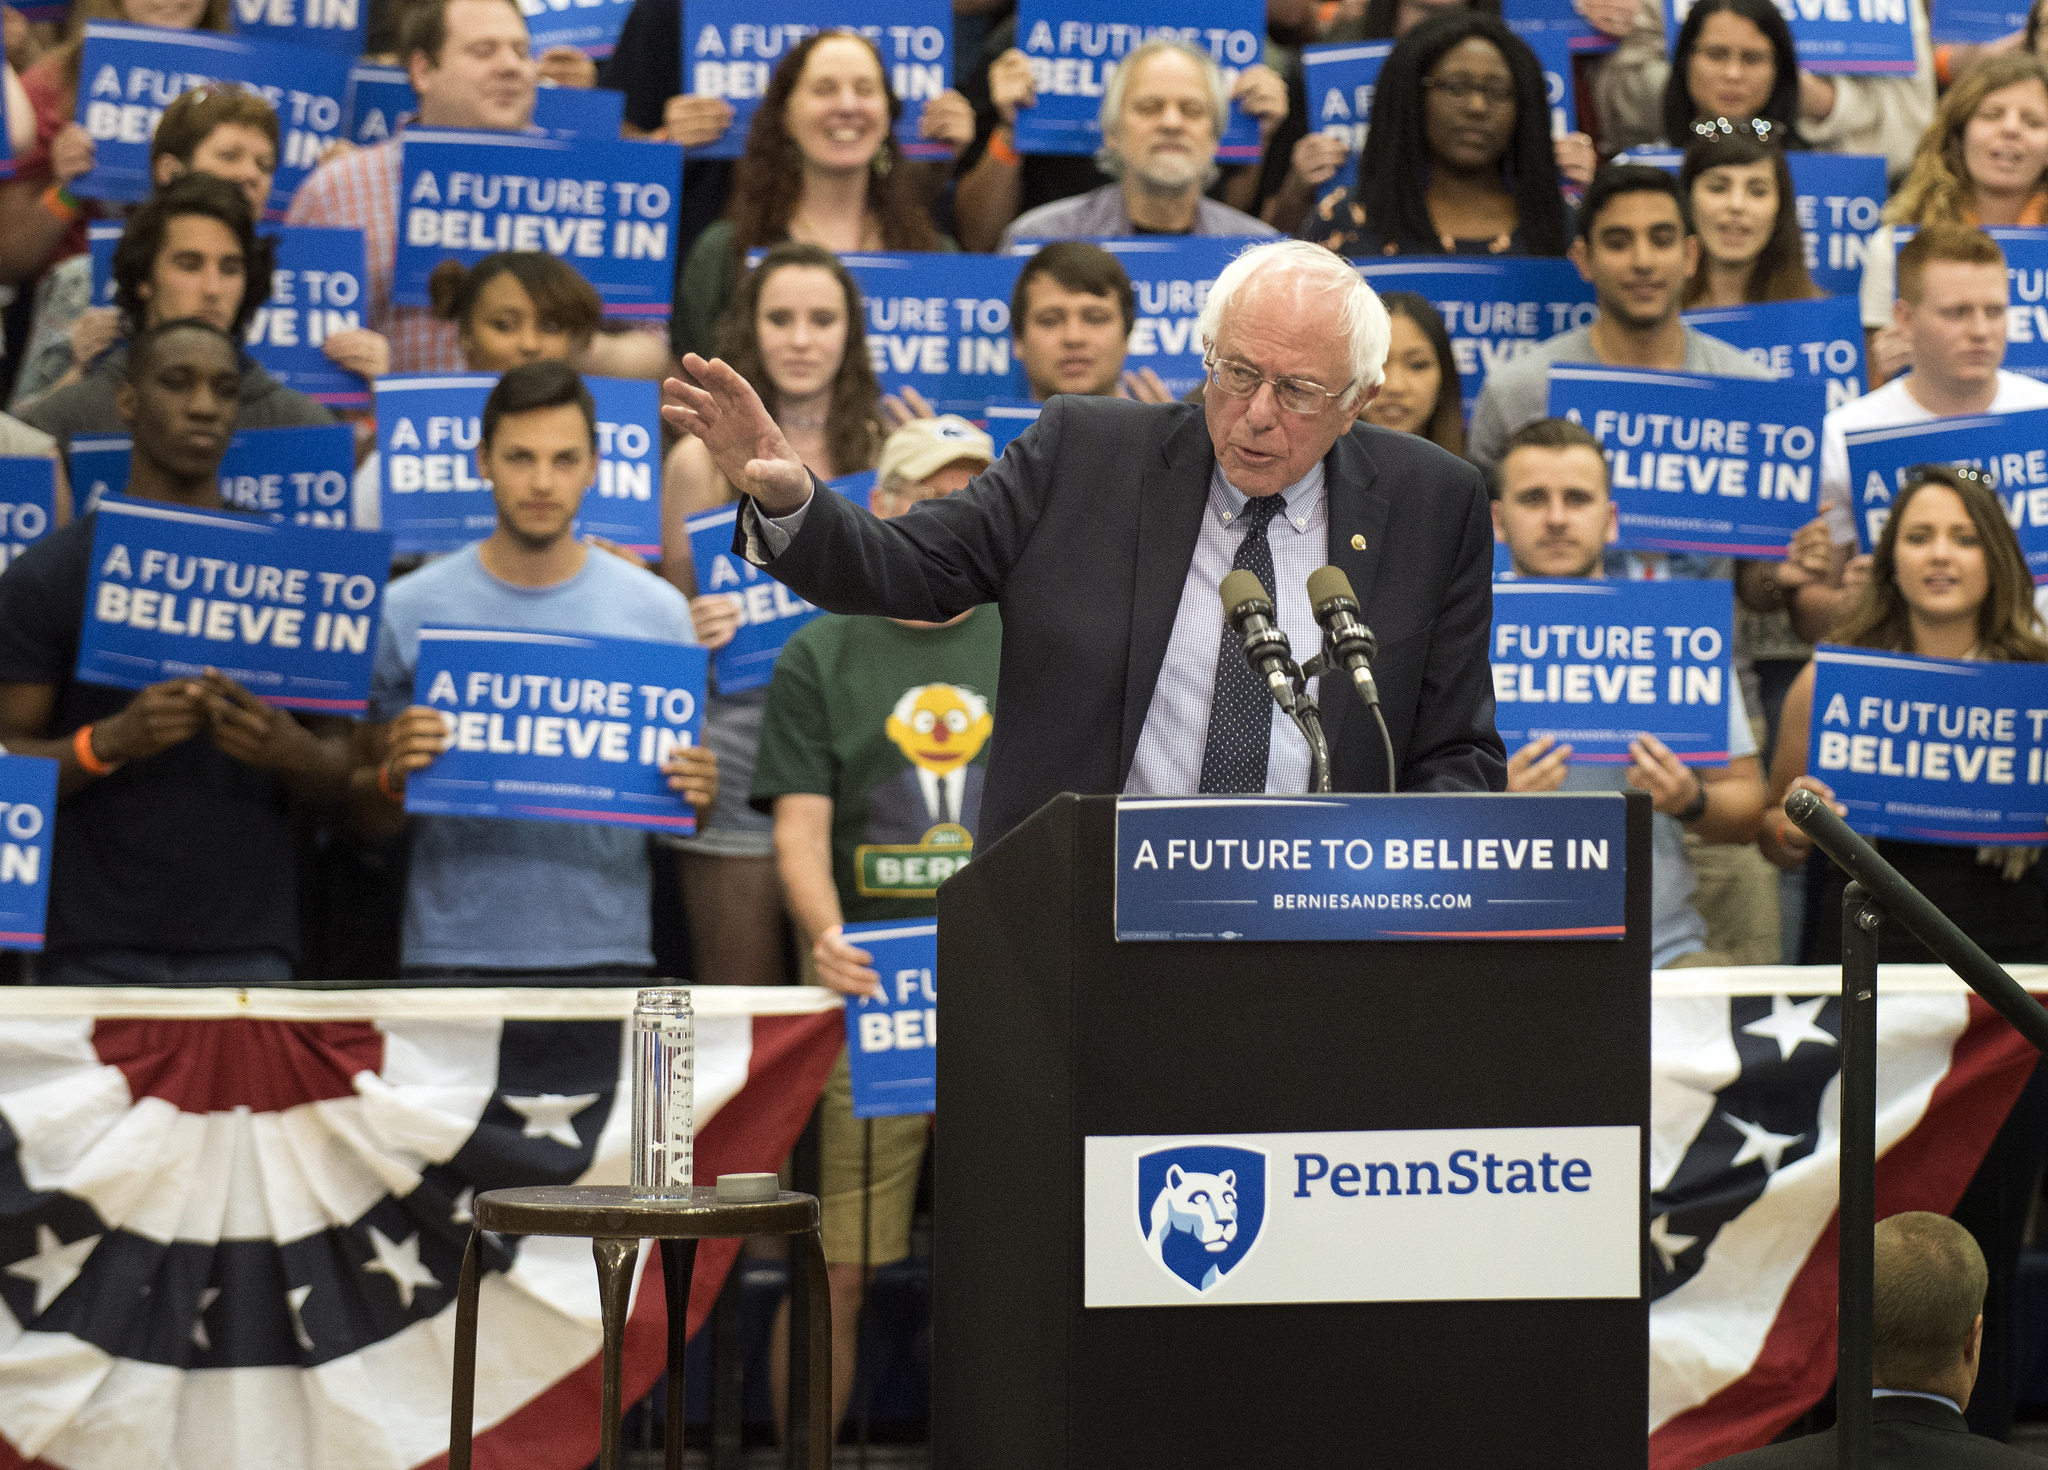 """[Sanders] has brought millions of young people into politics. According to CIRCLE, more youth have voted for Sanders than for Clinton and Trump combined,"" writes Christopher Beem in a recent Fortune article. Photo credit: Penn State"